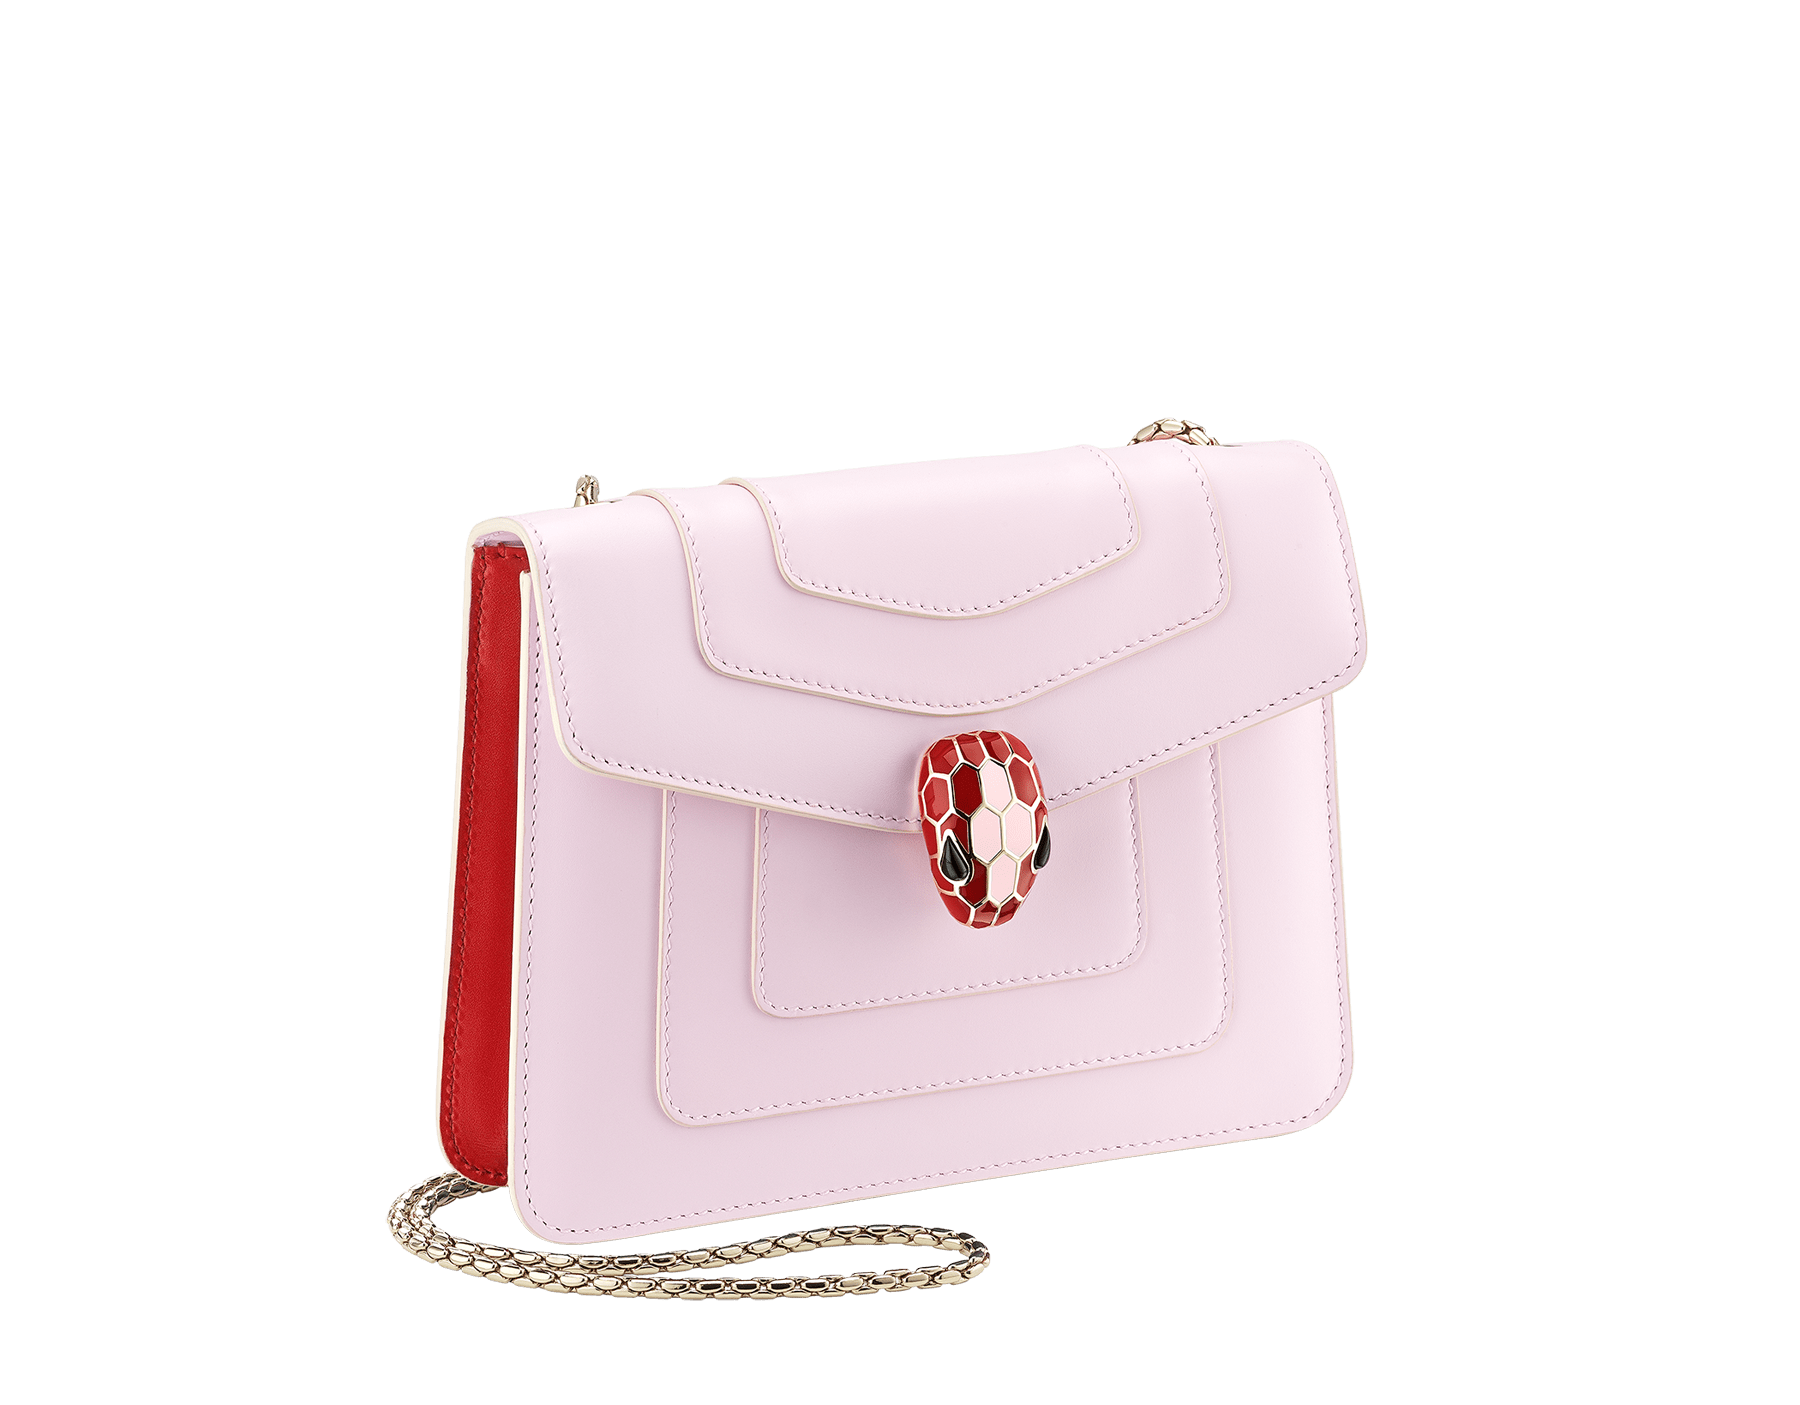 Serpenti Forever crossbody bag in sea star coral smooth calf leather body and milky opal calf leather sides. Snakehead closure in light gold plated brass decorated with milky opal and black enamel, and black onyx eyes. 422-BCLa image 2